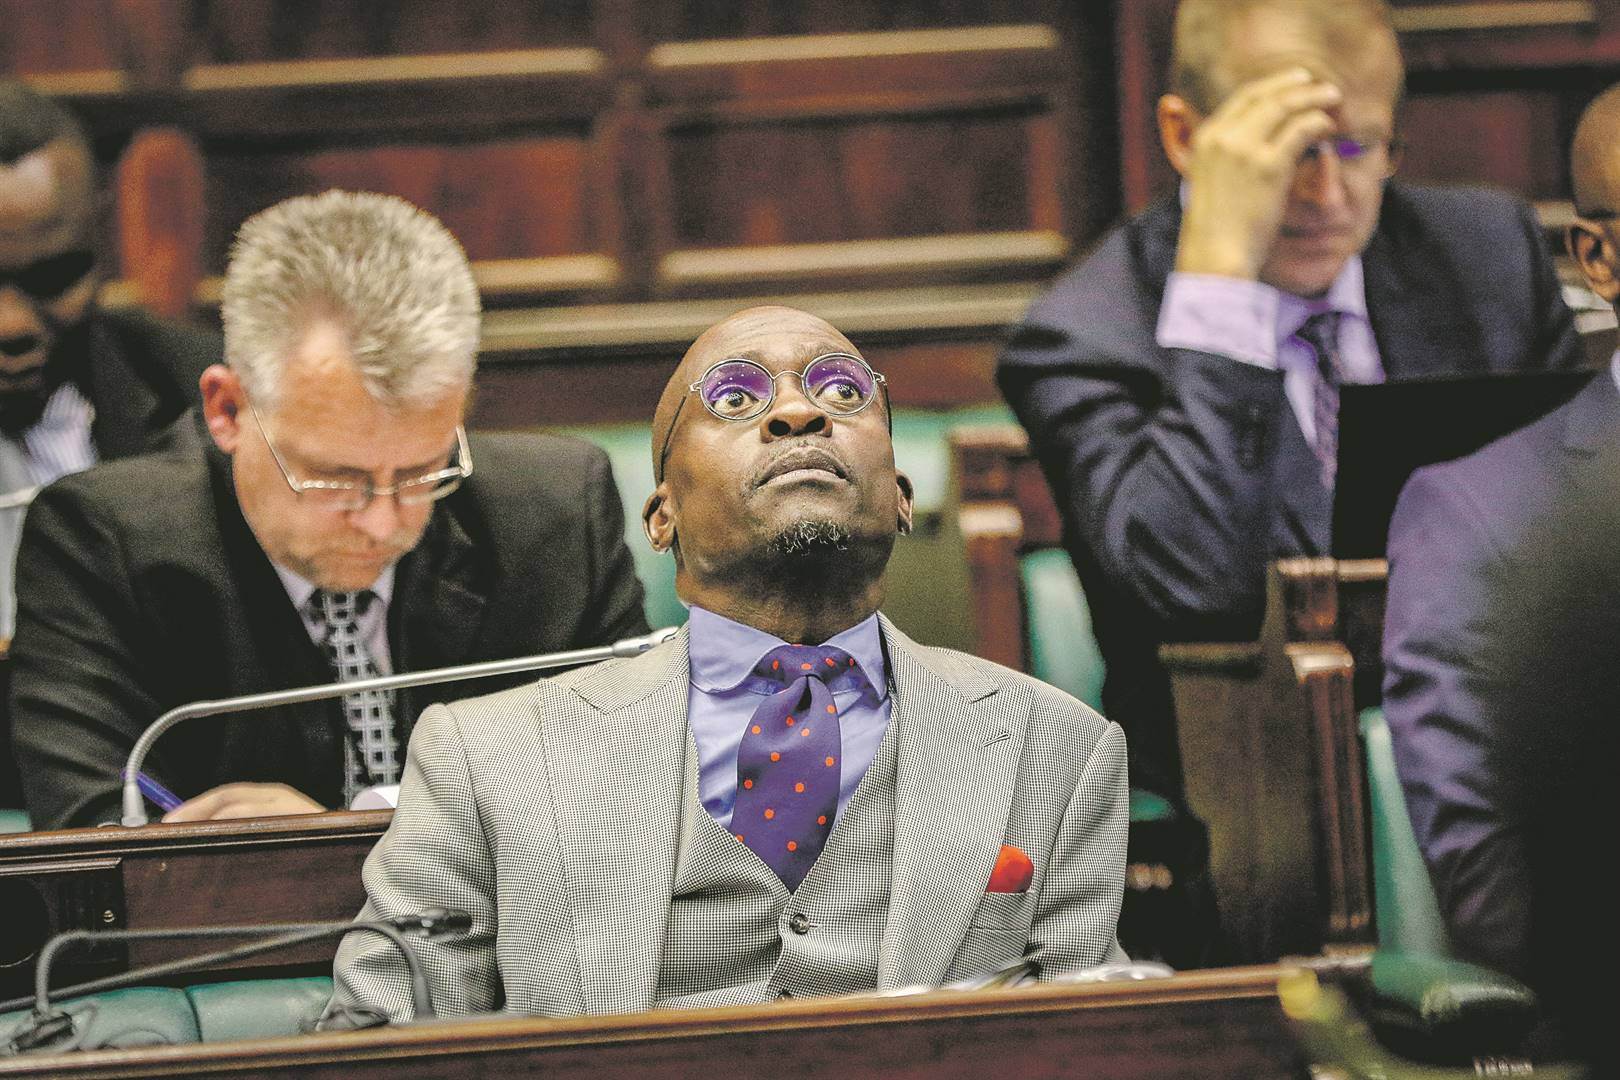 Malusi Gigaba claims hitmen were hired to kill him | Citypress - News24